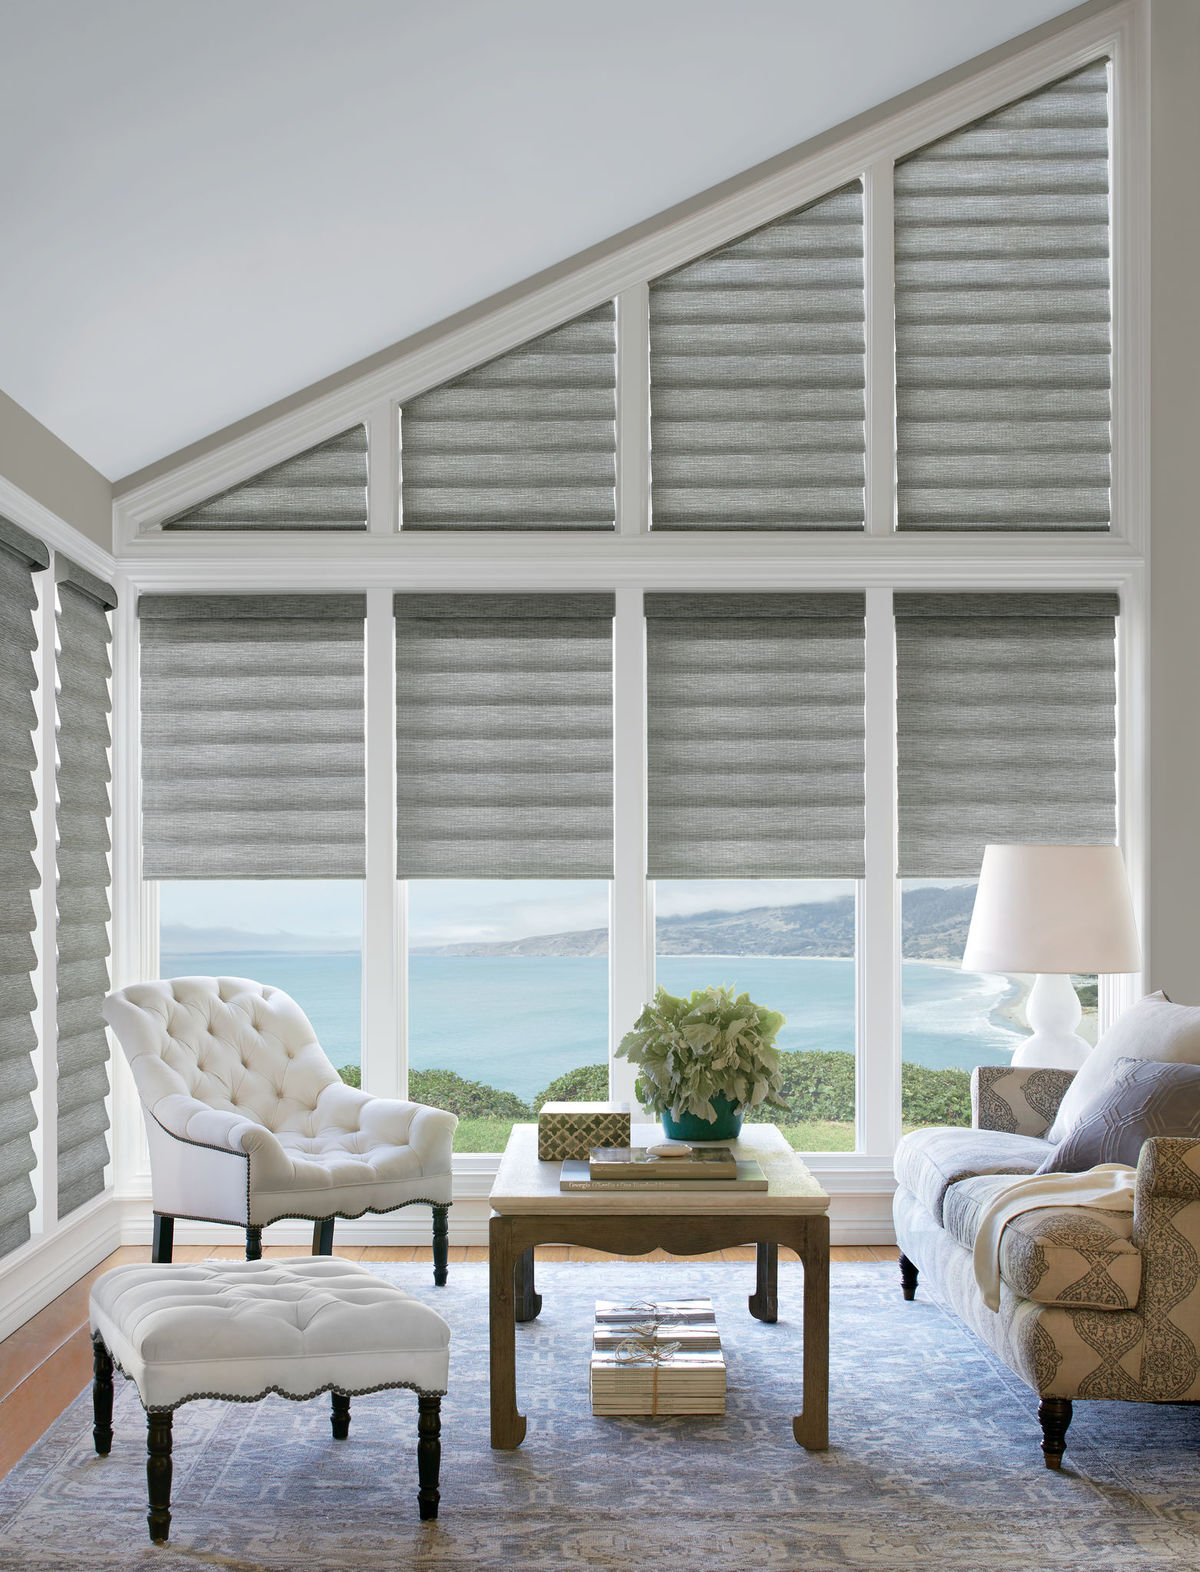 vignette-modern-roman-shades-gallery-of-shades.jpg